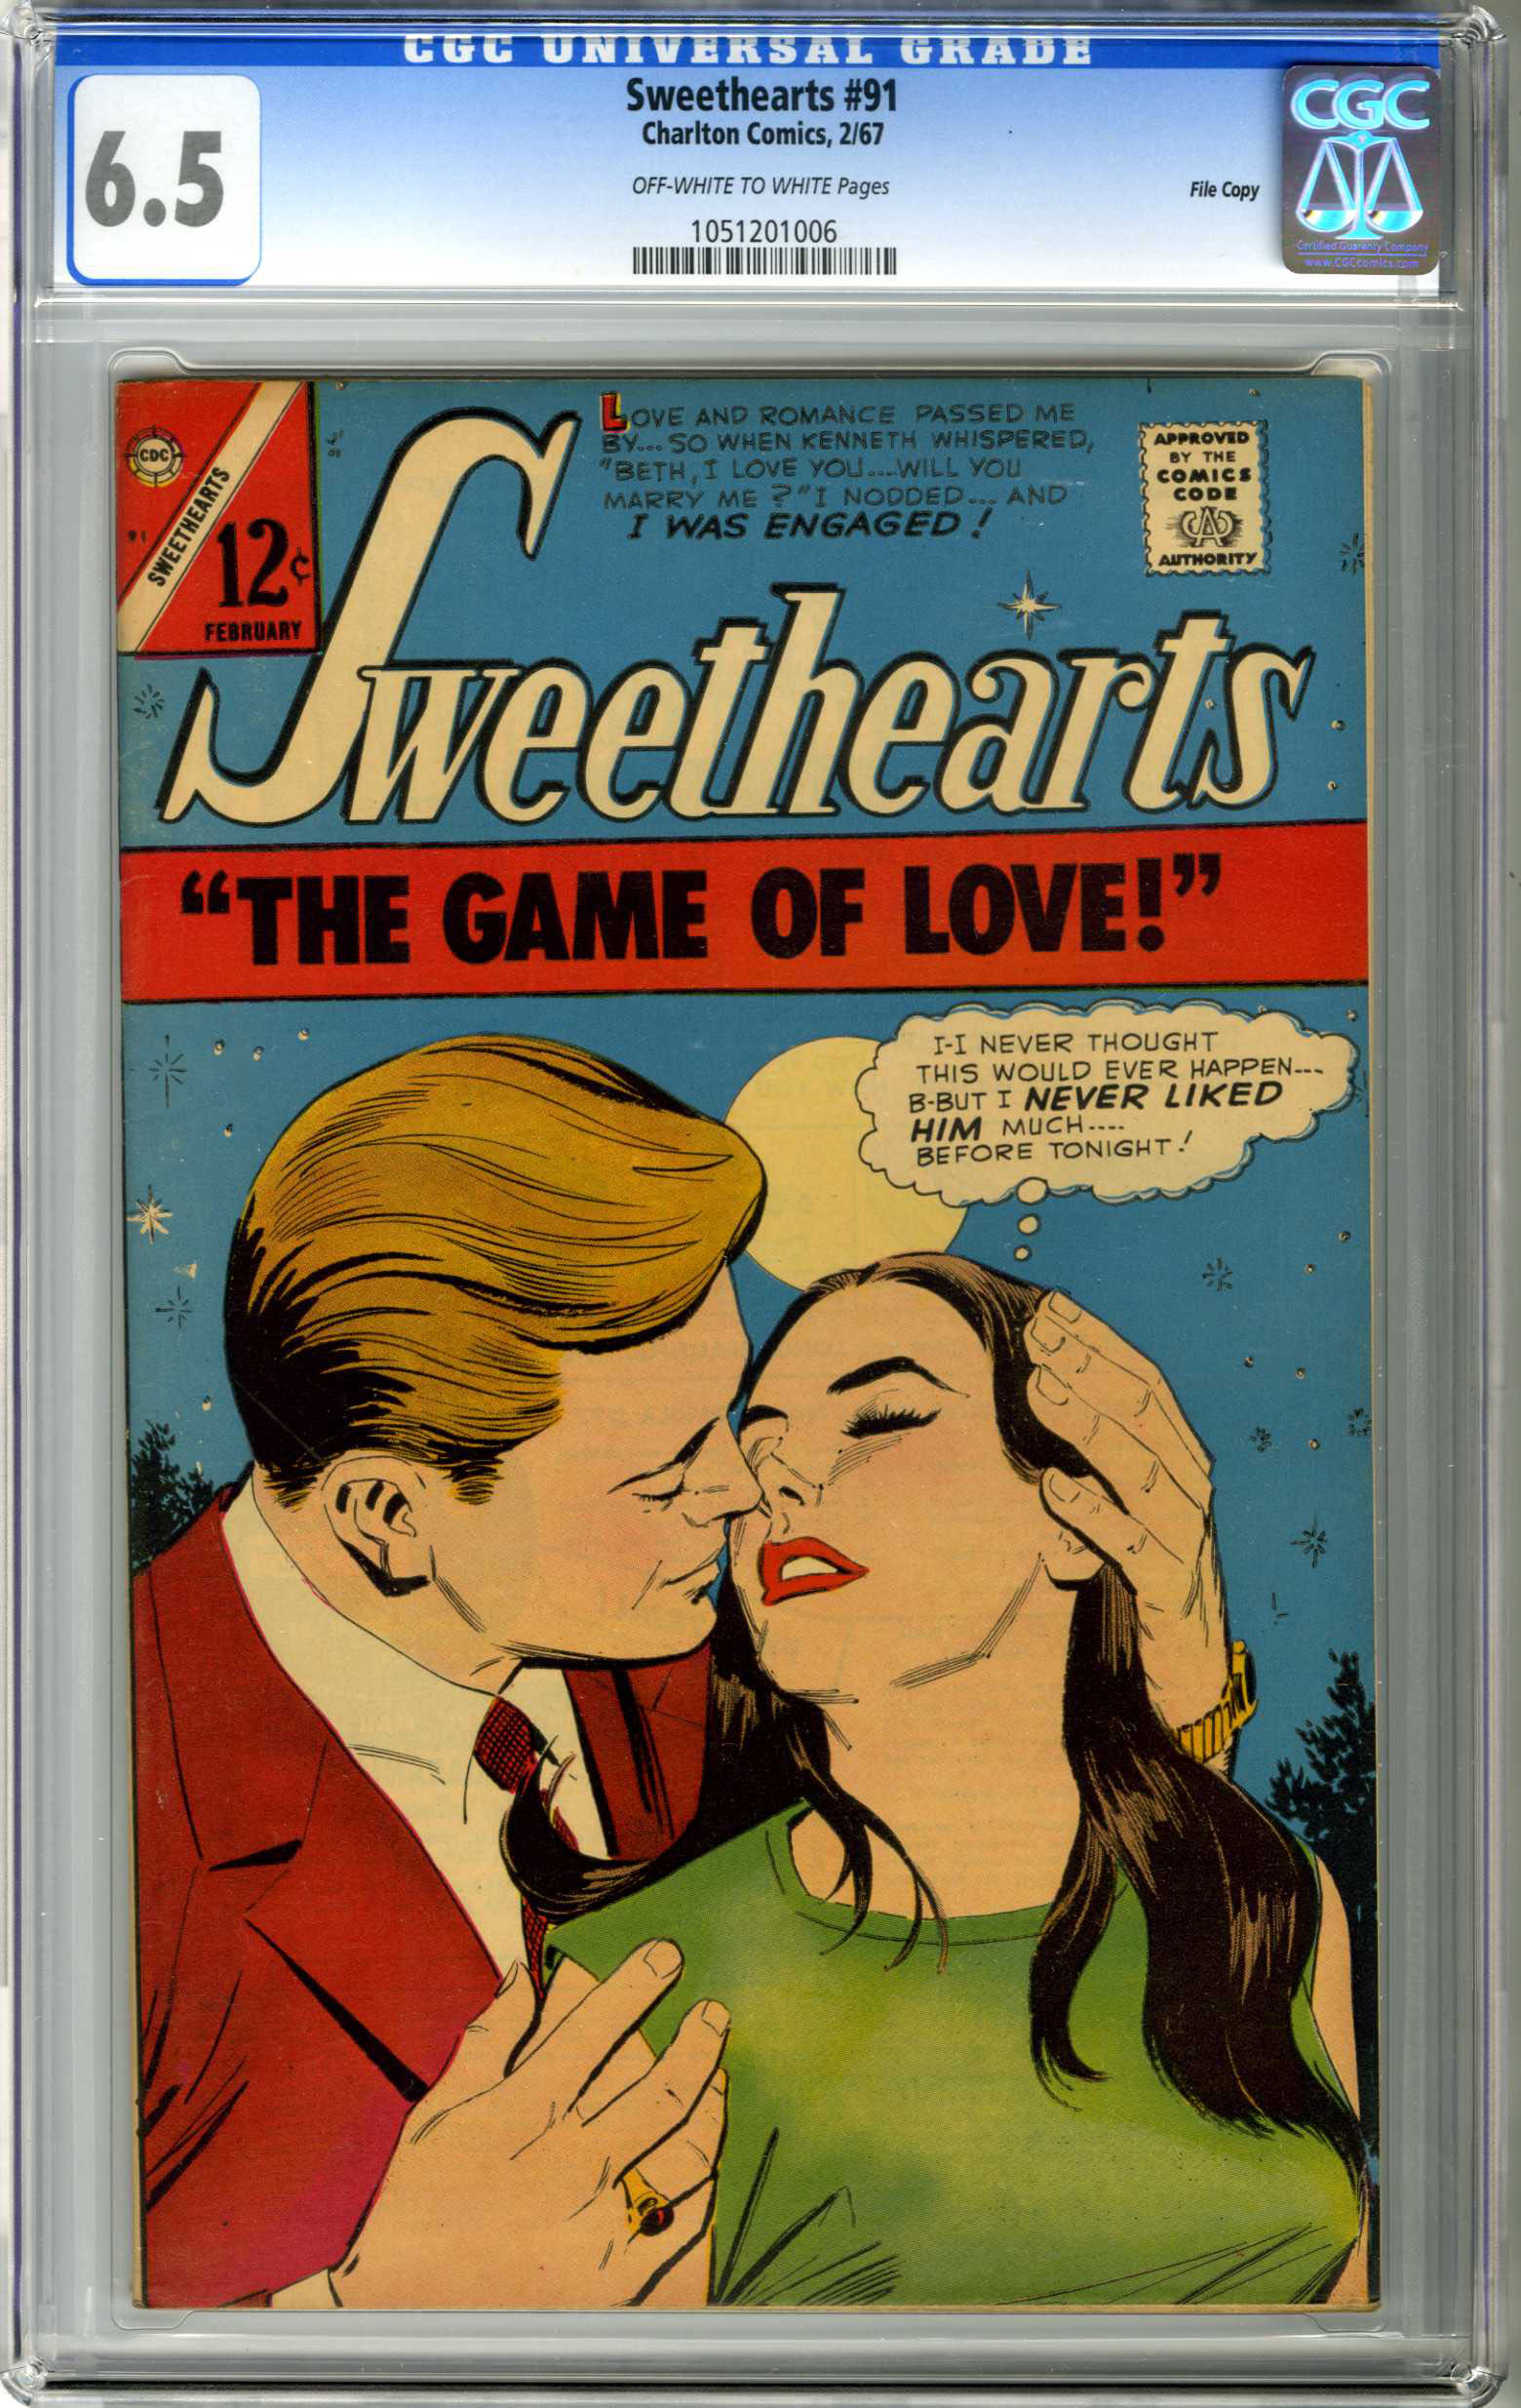 SWEETHEARTS #91 (1967) CGC FN+ 6.5 OWW Pages FILE COPY / GAME OF LOVE